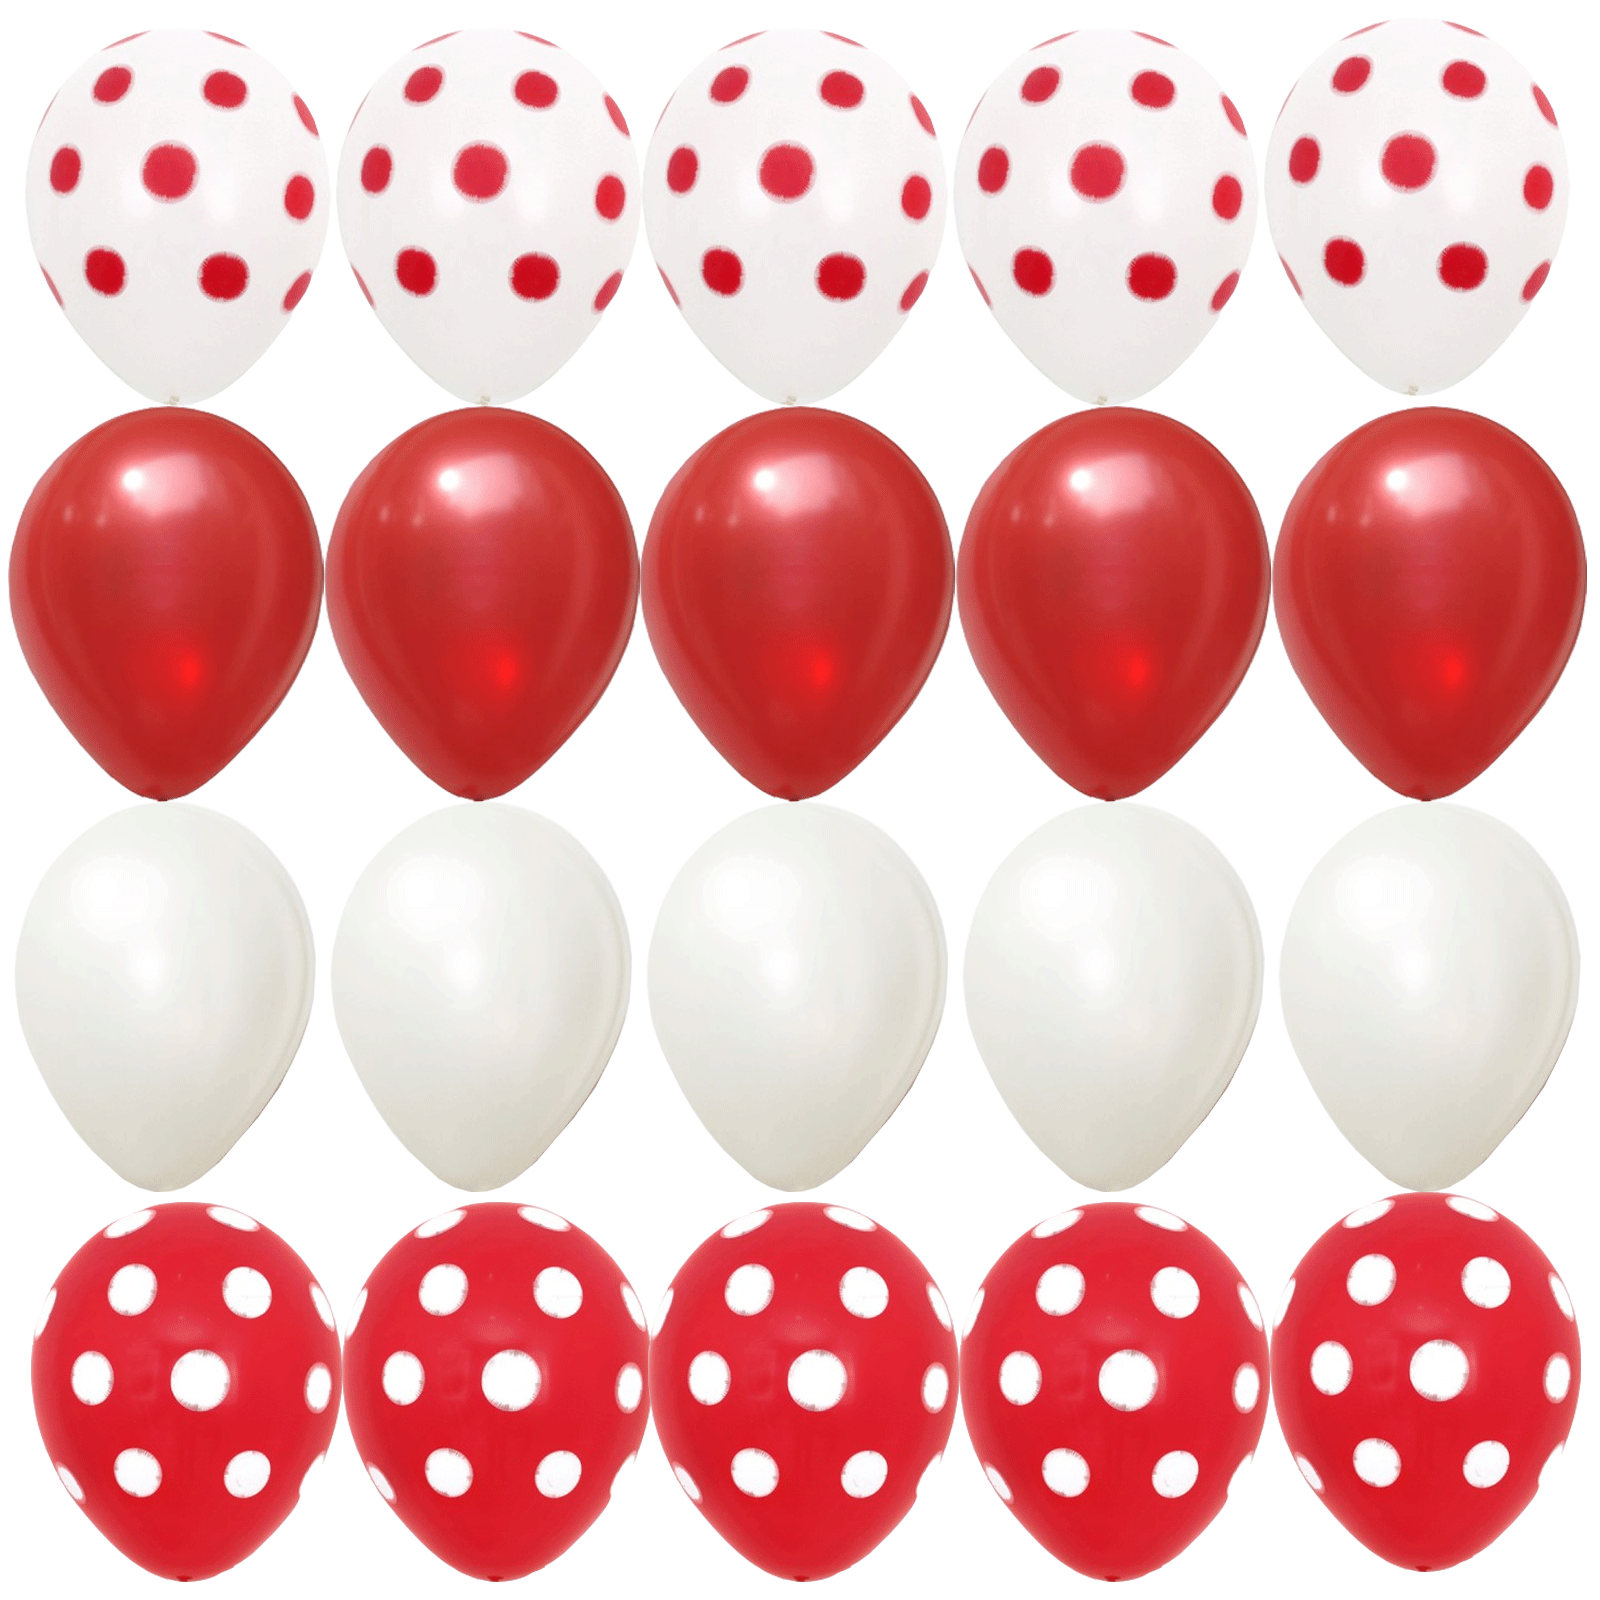 20pcs balloons Red White Polka dots Minnie Mouse Theme Baby Shower ...